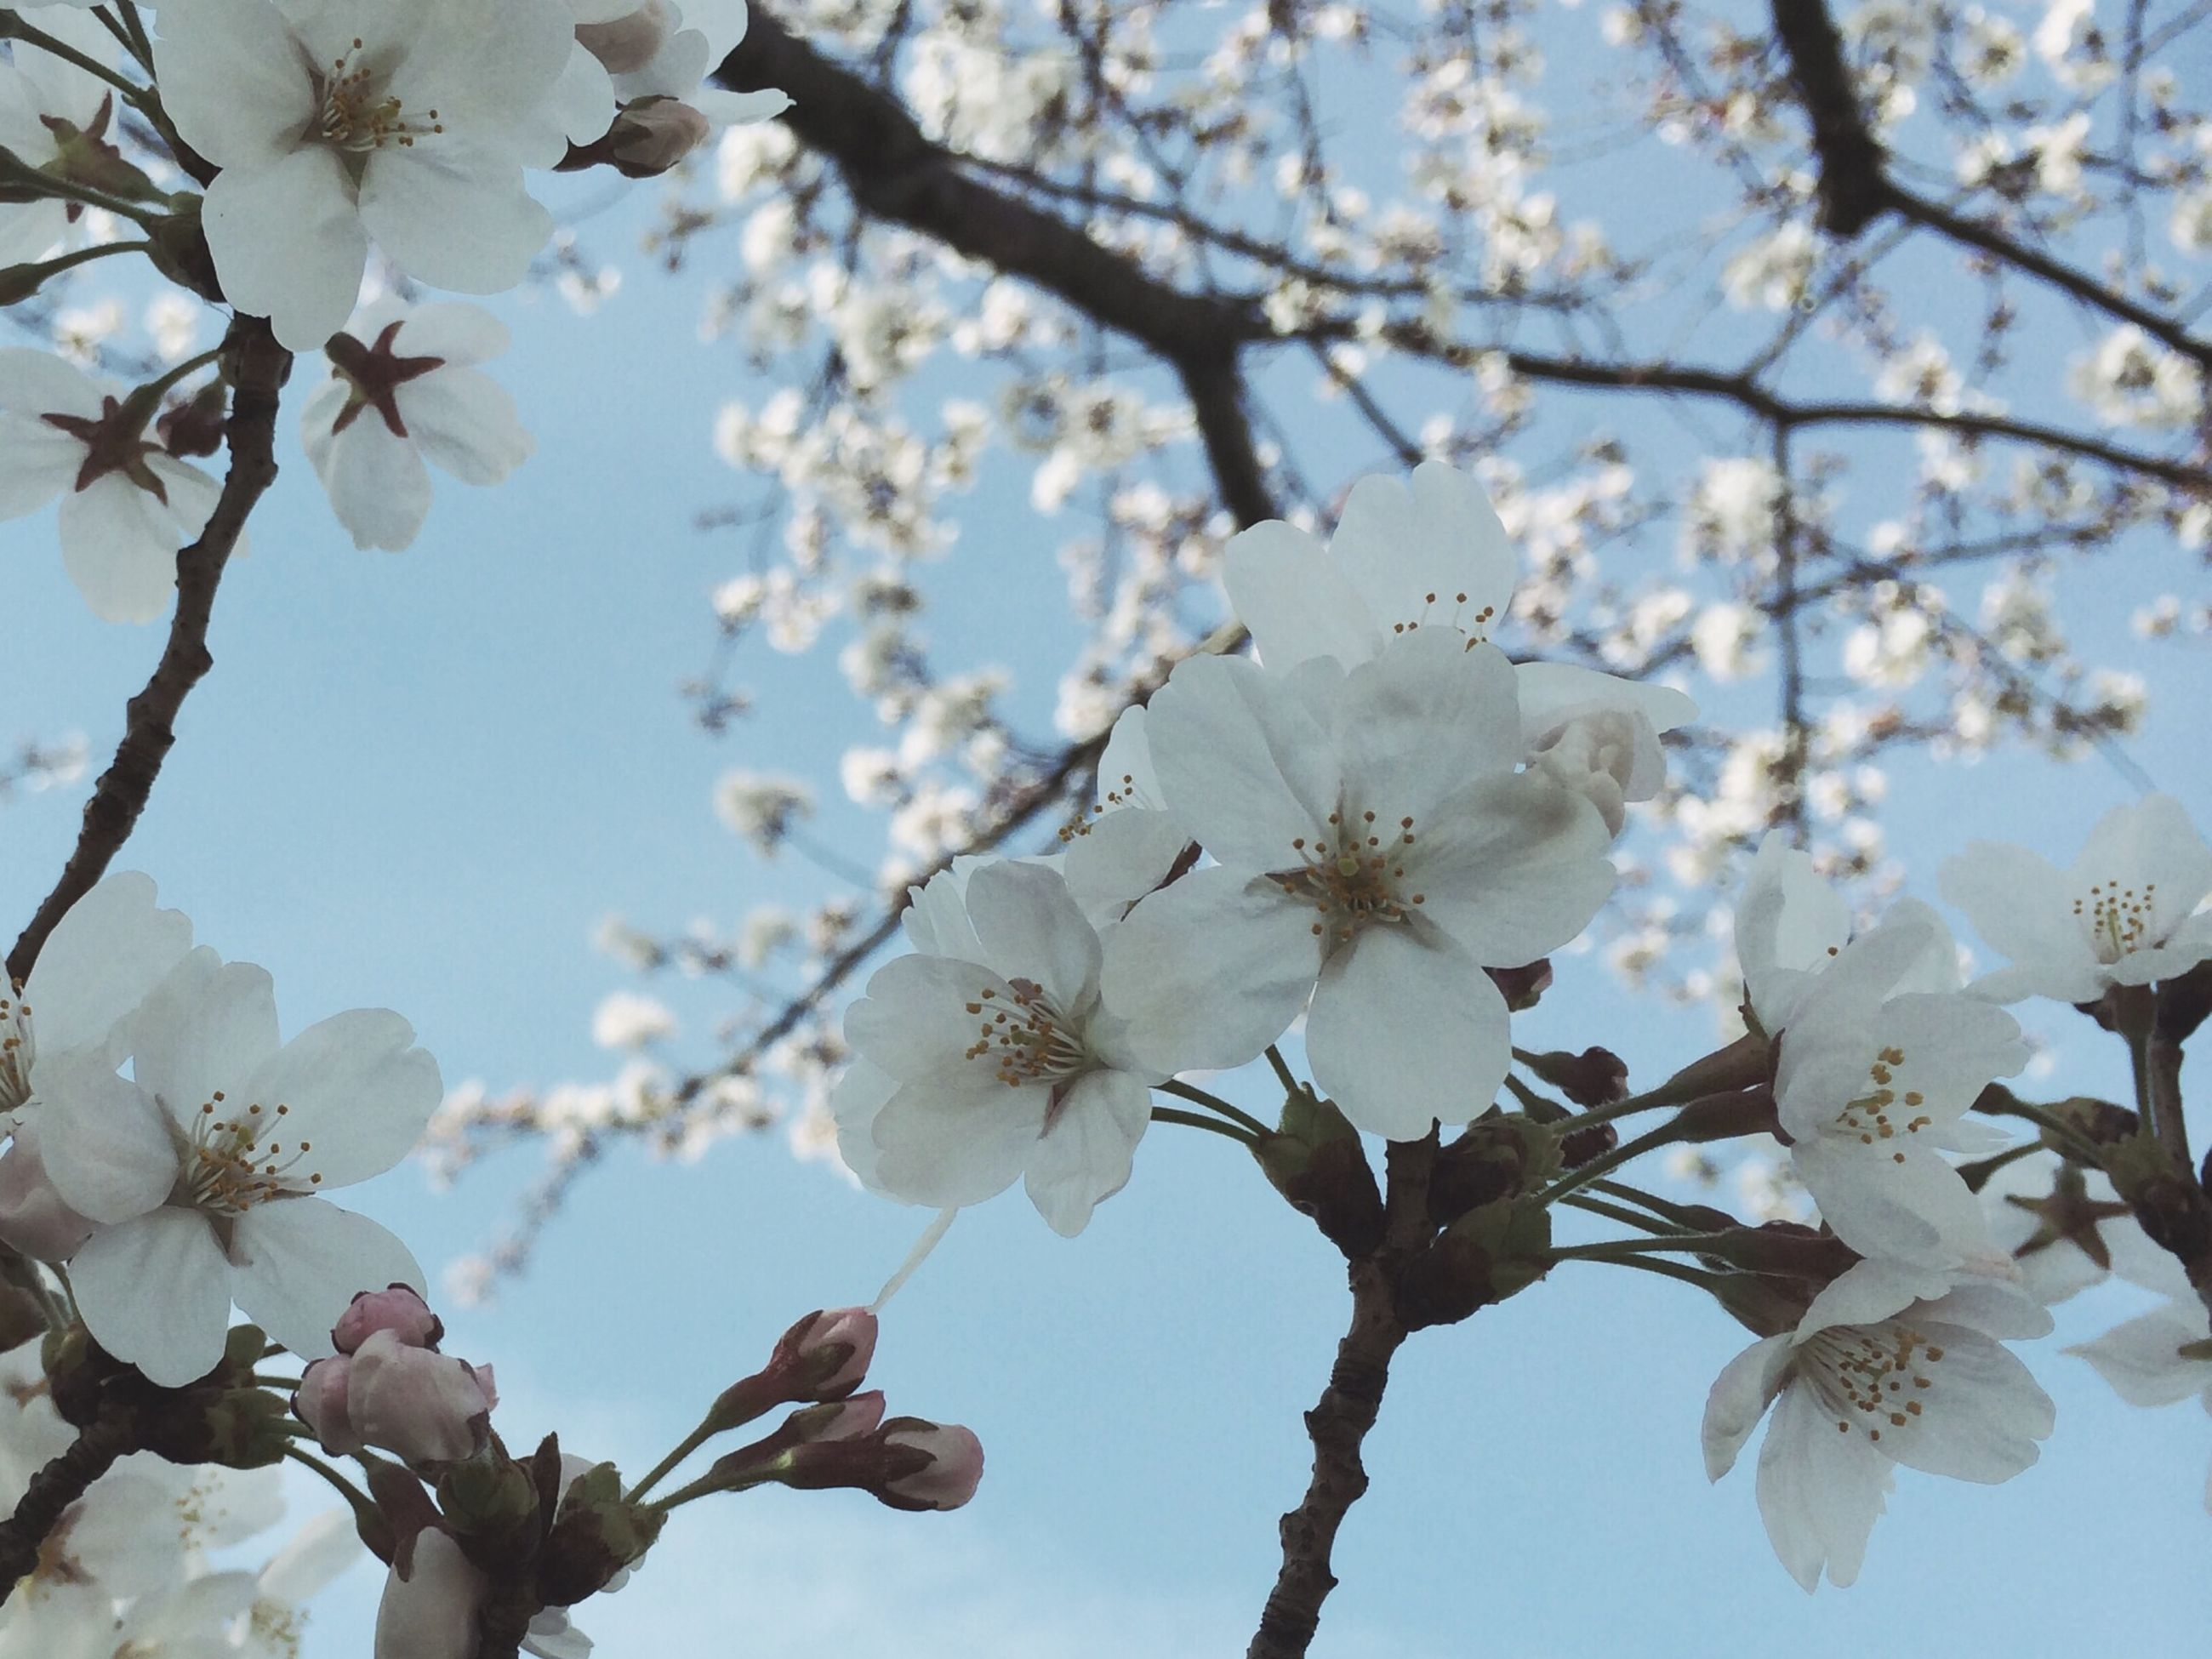 flower, branch, tree, freshness, cherry blossom, low angle view, cherry tree, growth, fragility, blossom, beauty in nature, white color, nature, fruit tree, apple tree, petal, in bloom, apple blossom, springtime, blooming